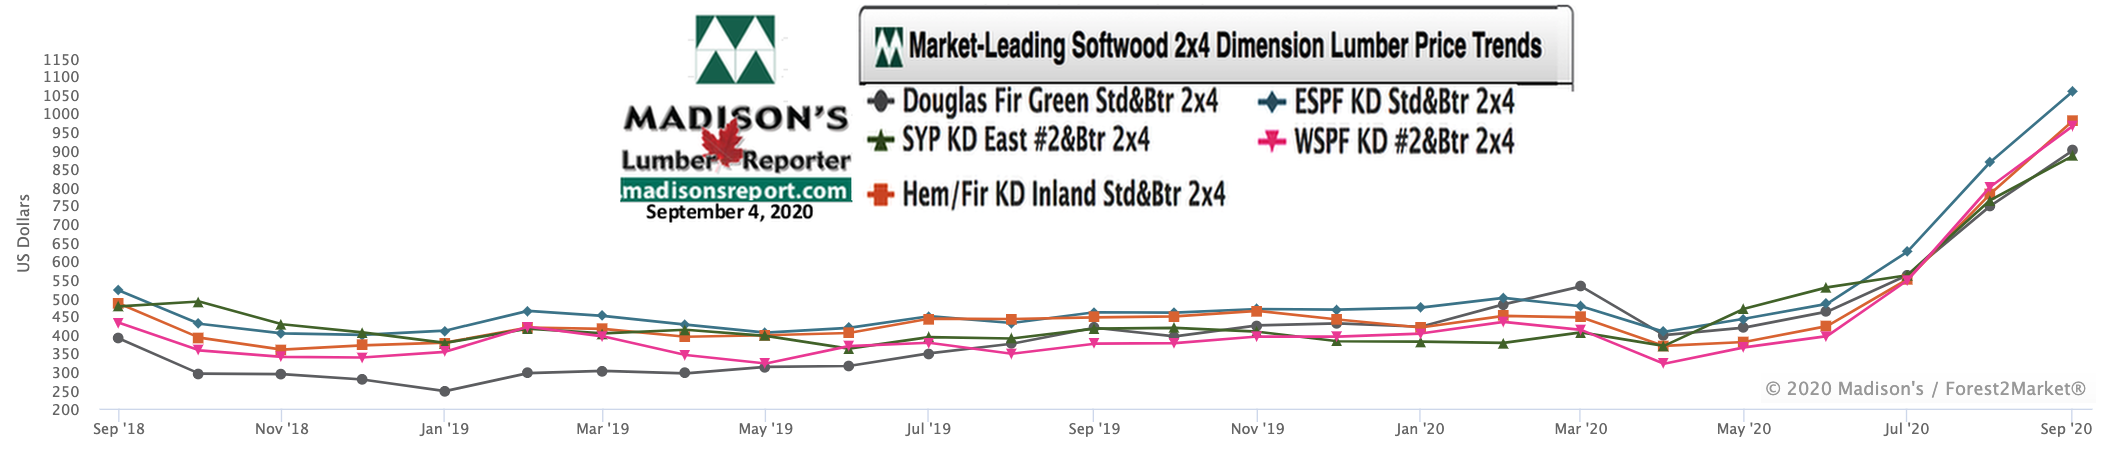 Softwood Lumber Movers & Shakers: green and KD Construction Framing Dimension Lumber Prices SEPT 2020